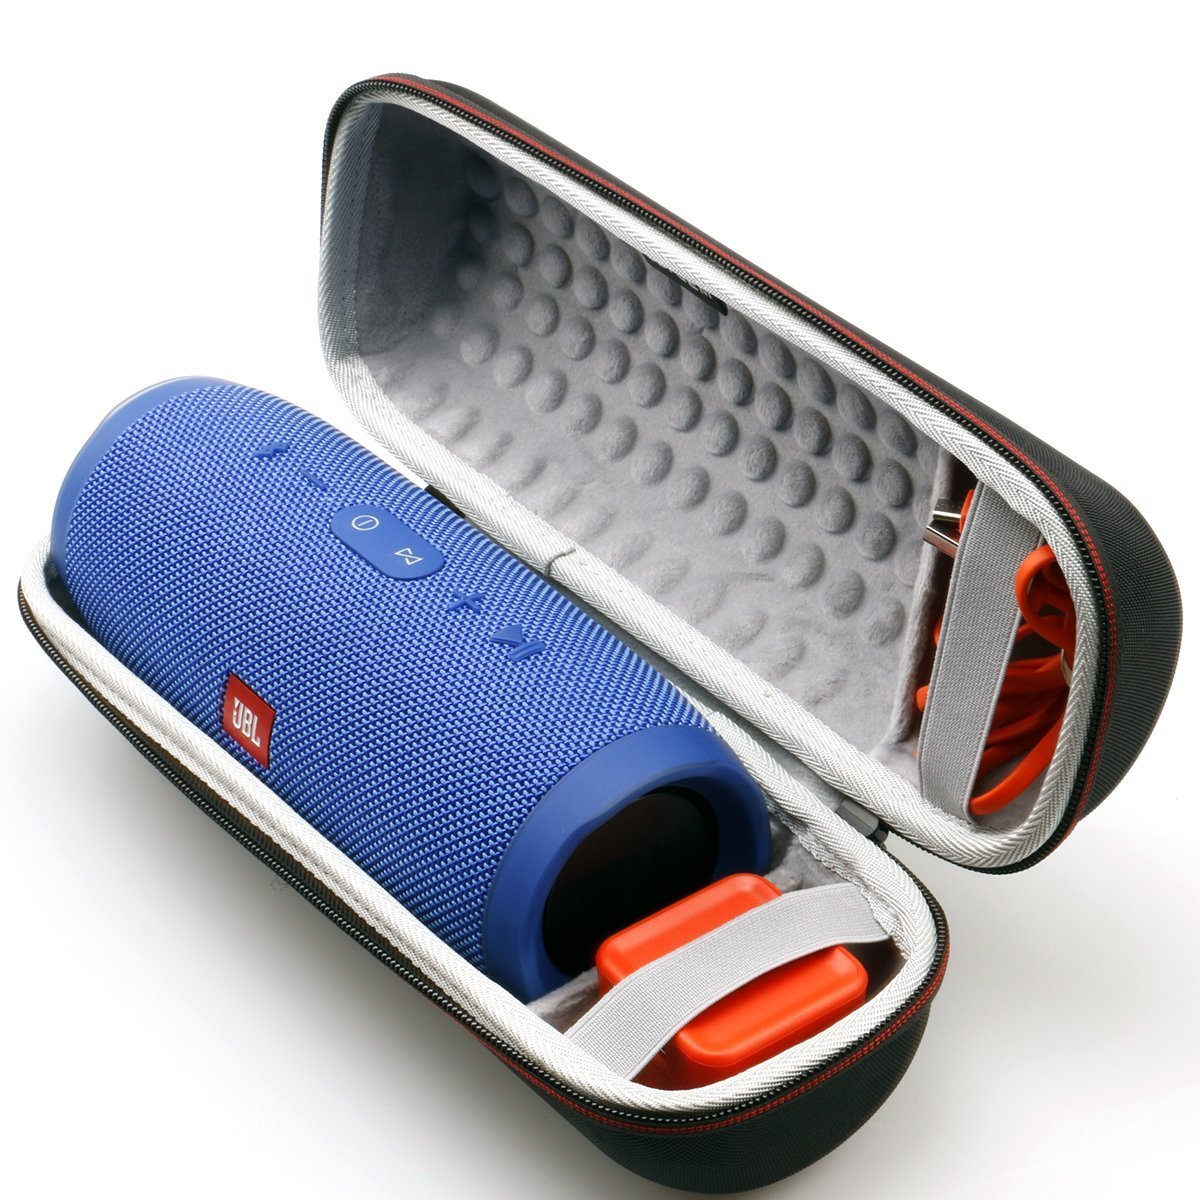 Jbl Charge 3 Jblcharge3blkam Waterproof Portable Bluetooth Speaker Review Lg Bluetooth Fh2 Bluetooth Enabled Keyboard And Mouse Jabra Bluetooth Volume Control: LTGEM Case For JBL Charge 3 Waterproof Portable Wireless